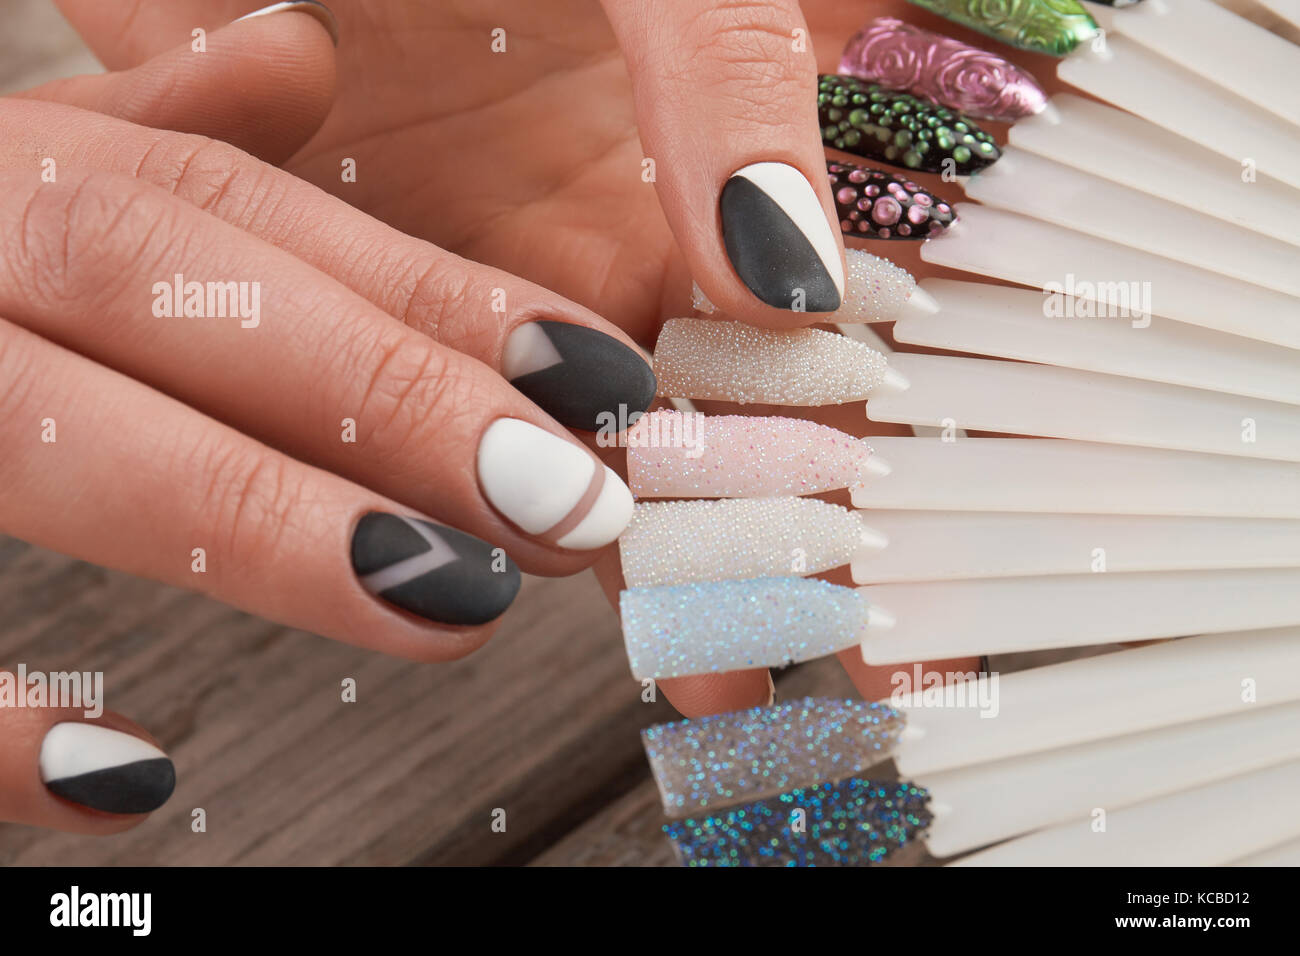 Fashion nail art samples in female hands Stock Photo: 162520878 - Alamy